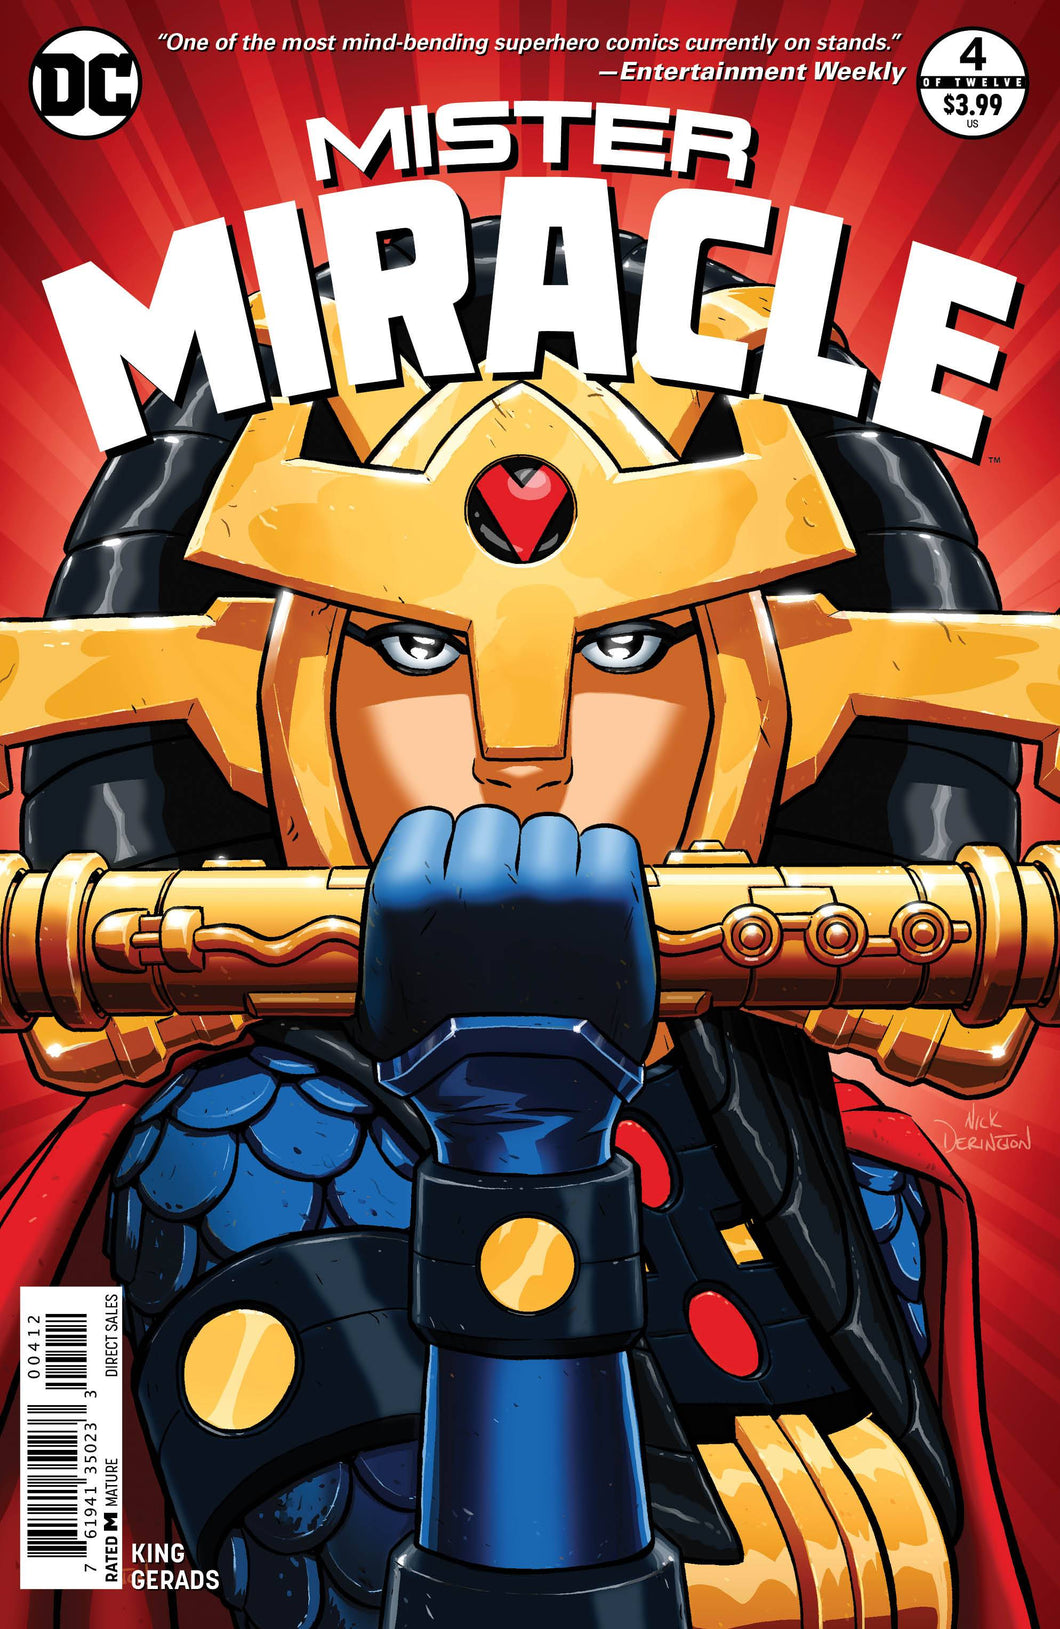 MISTER MIRACLE #4 (OF 12) 2ND PTG (MR) 02/17/18 RD